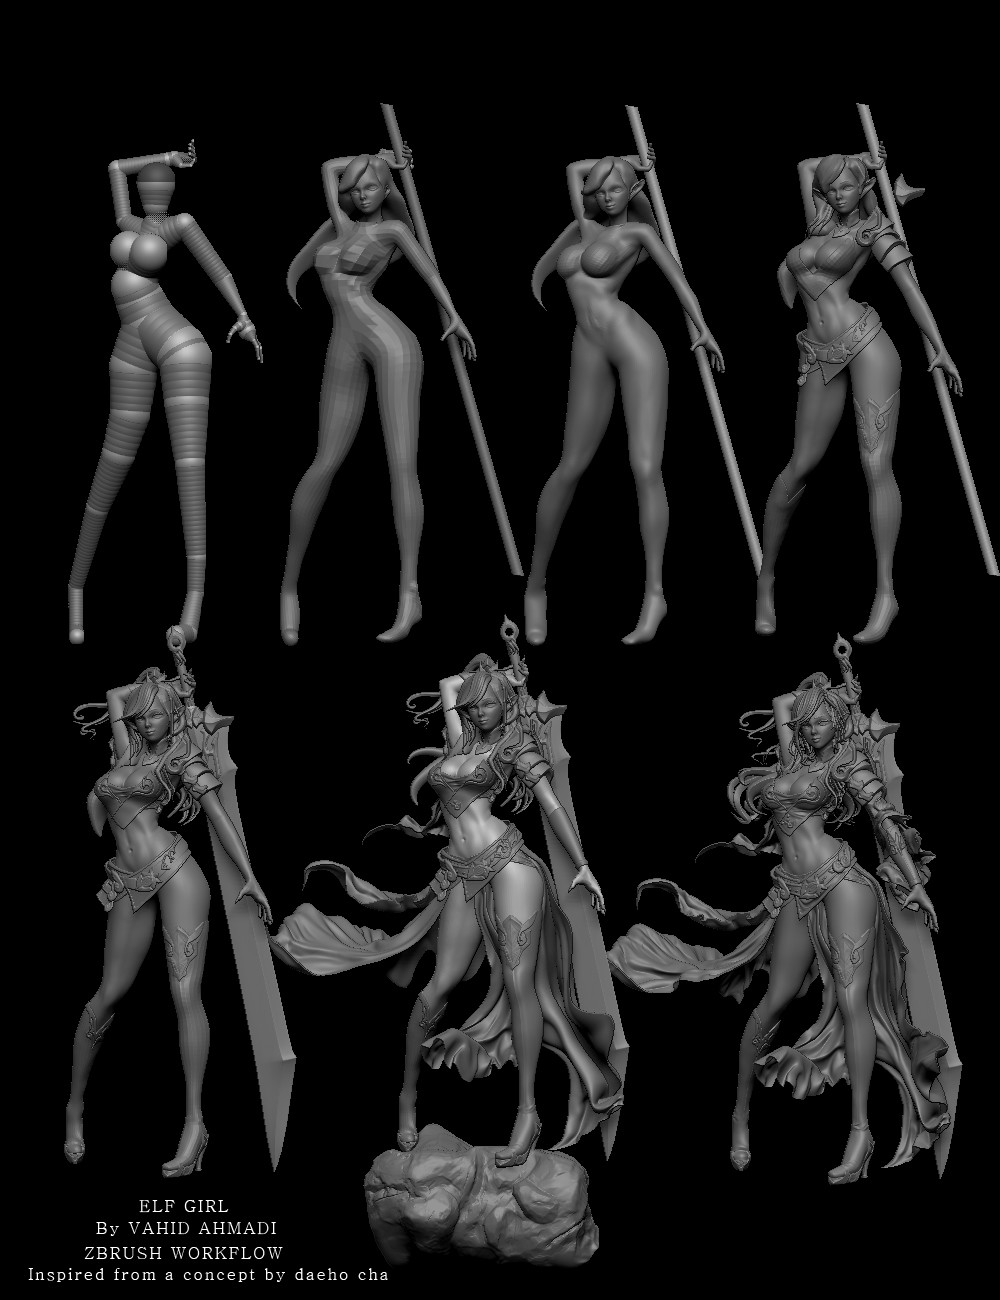 Vahid ahmadi elf girl workflow zbrush